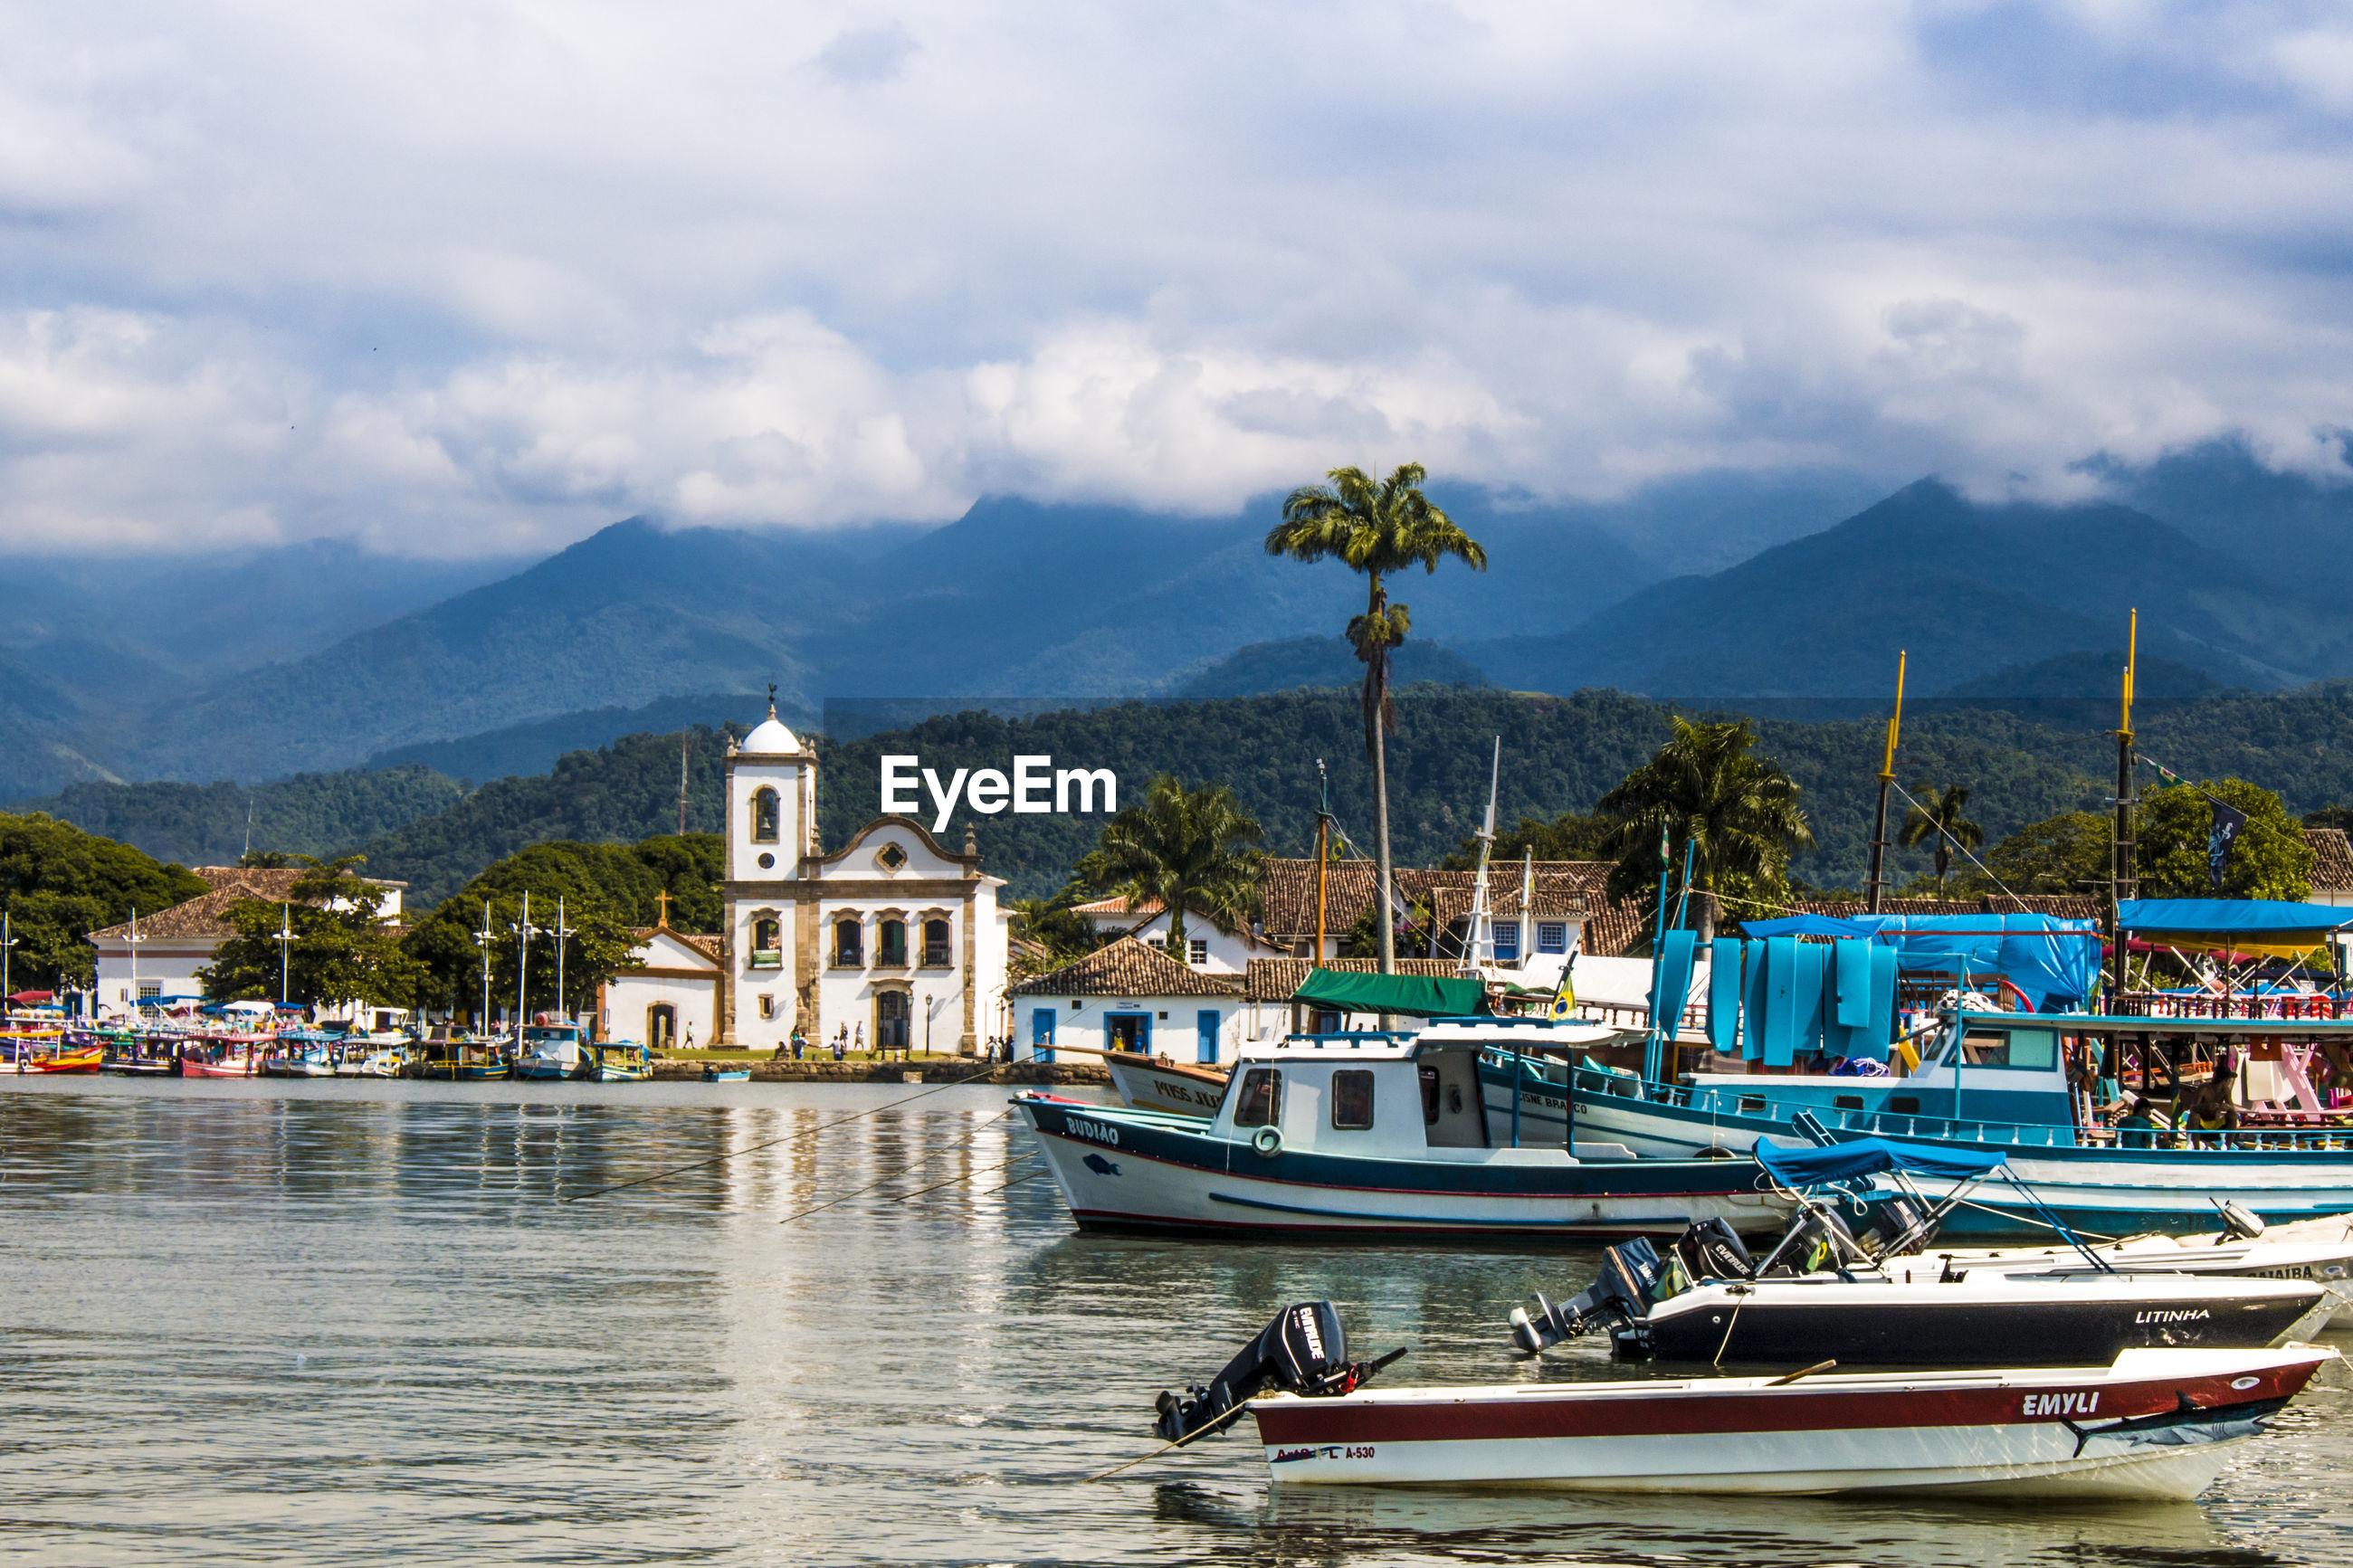 BOATS IN RIVER WITH MOUNTAINS IN BACKGROUND